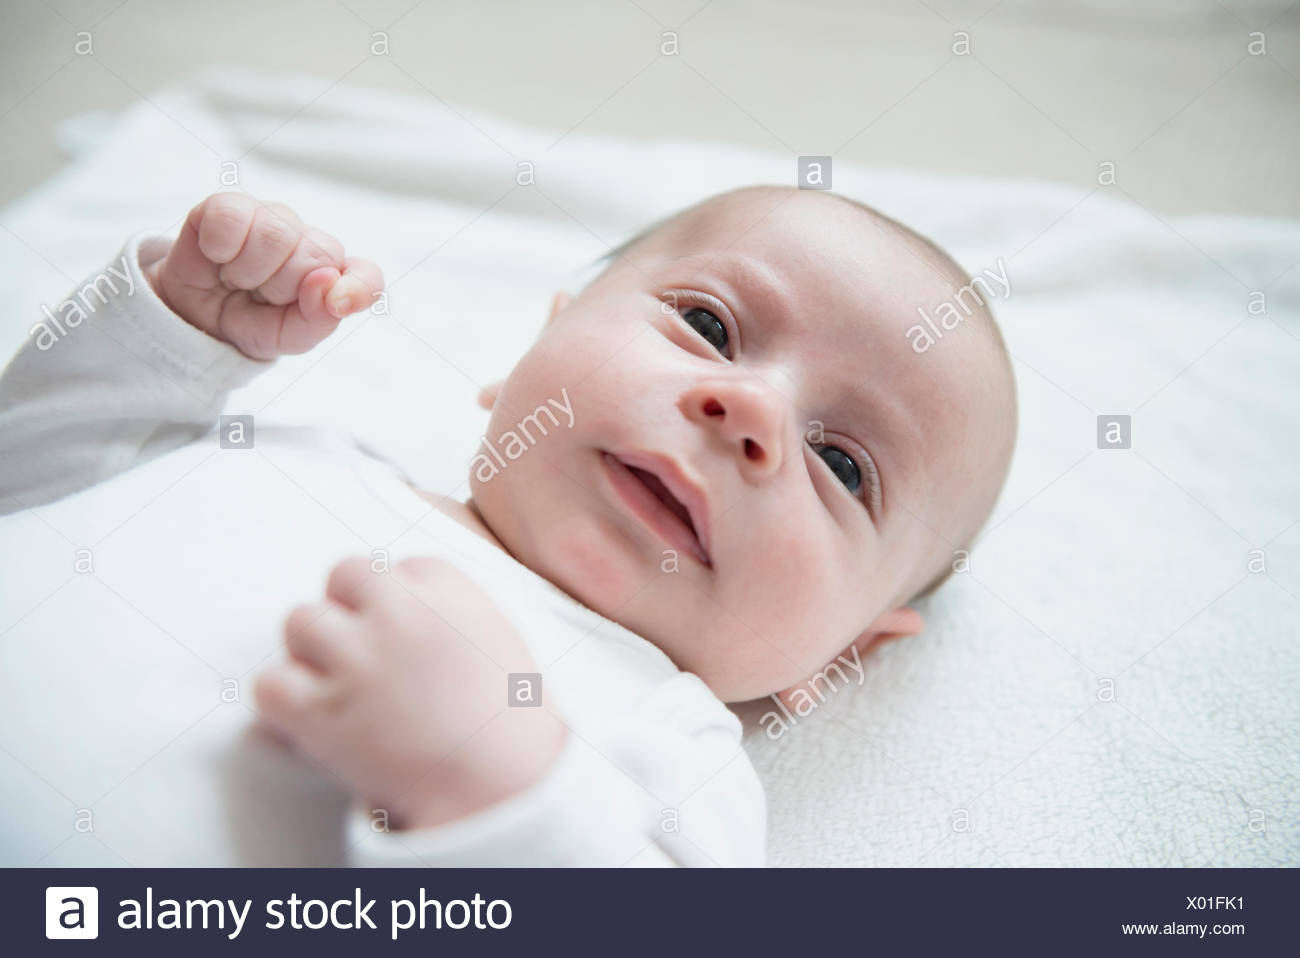 Baby boy playing on bed - Stock Image